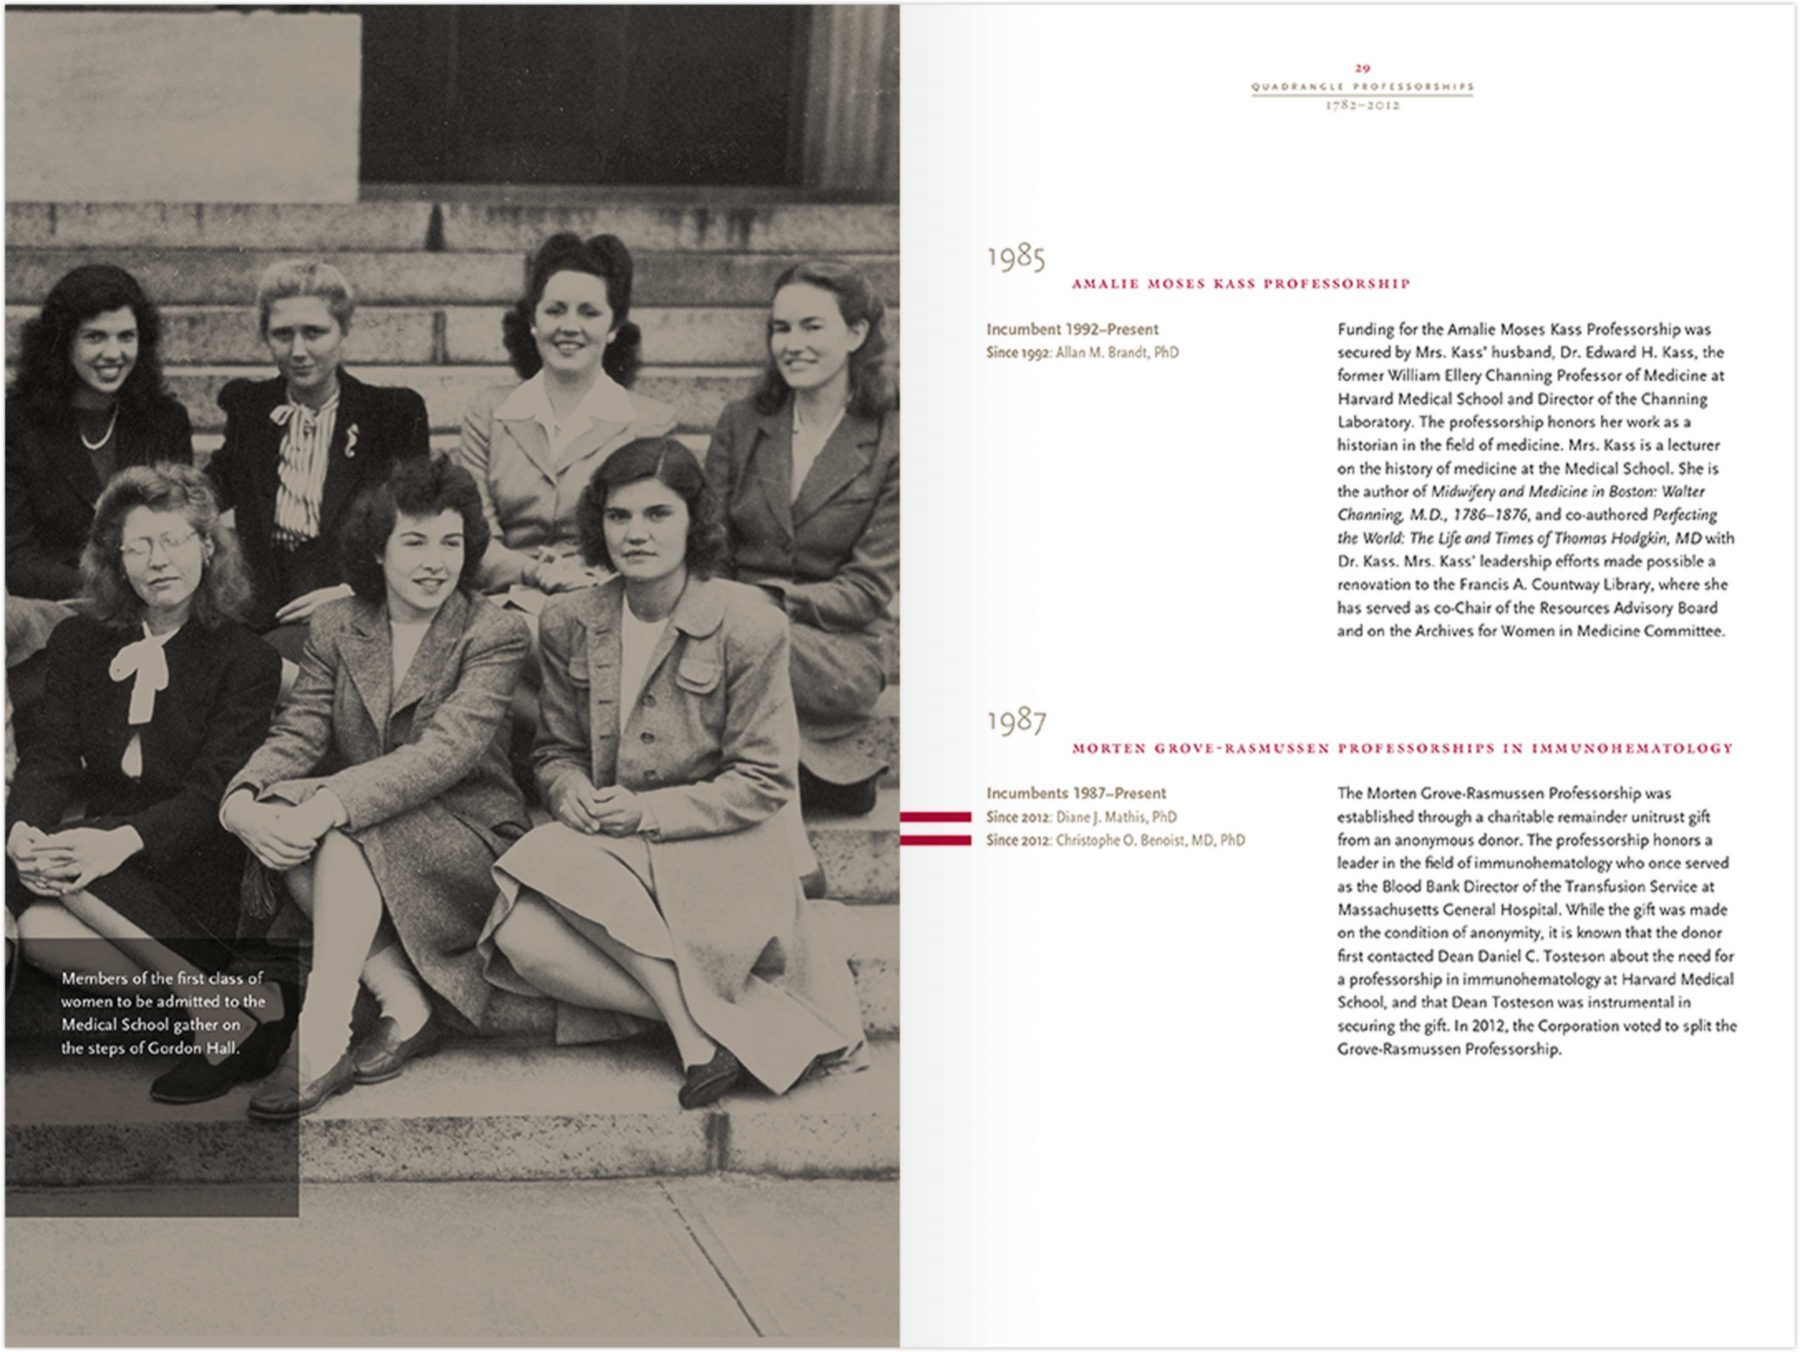 Harvard Medical School Quadrangle Professorships brochure